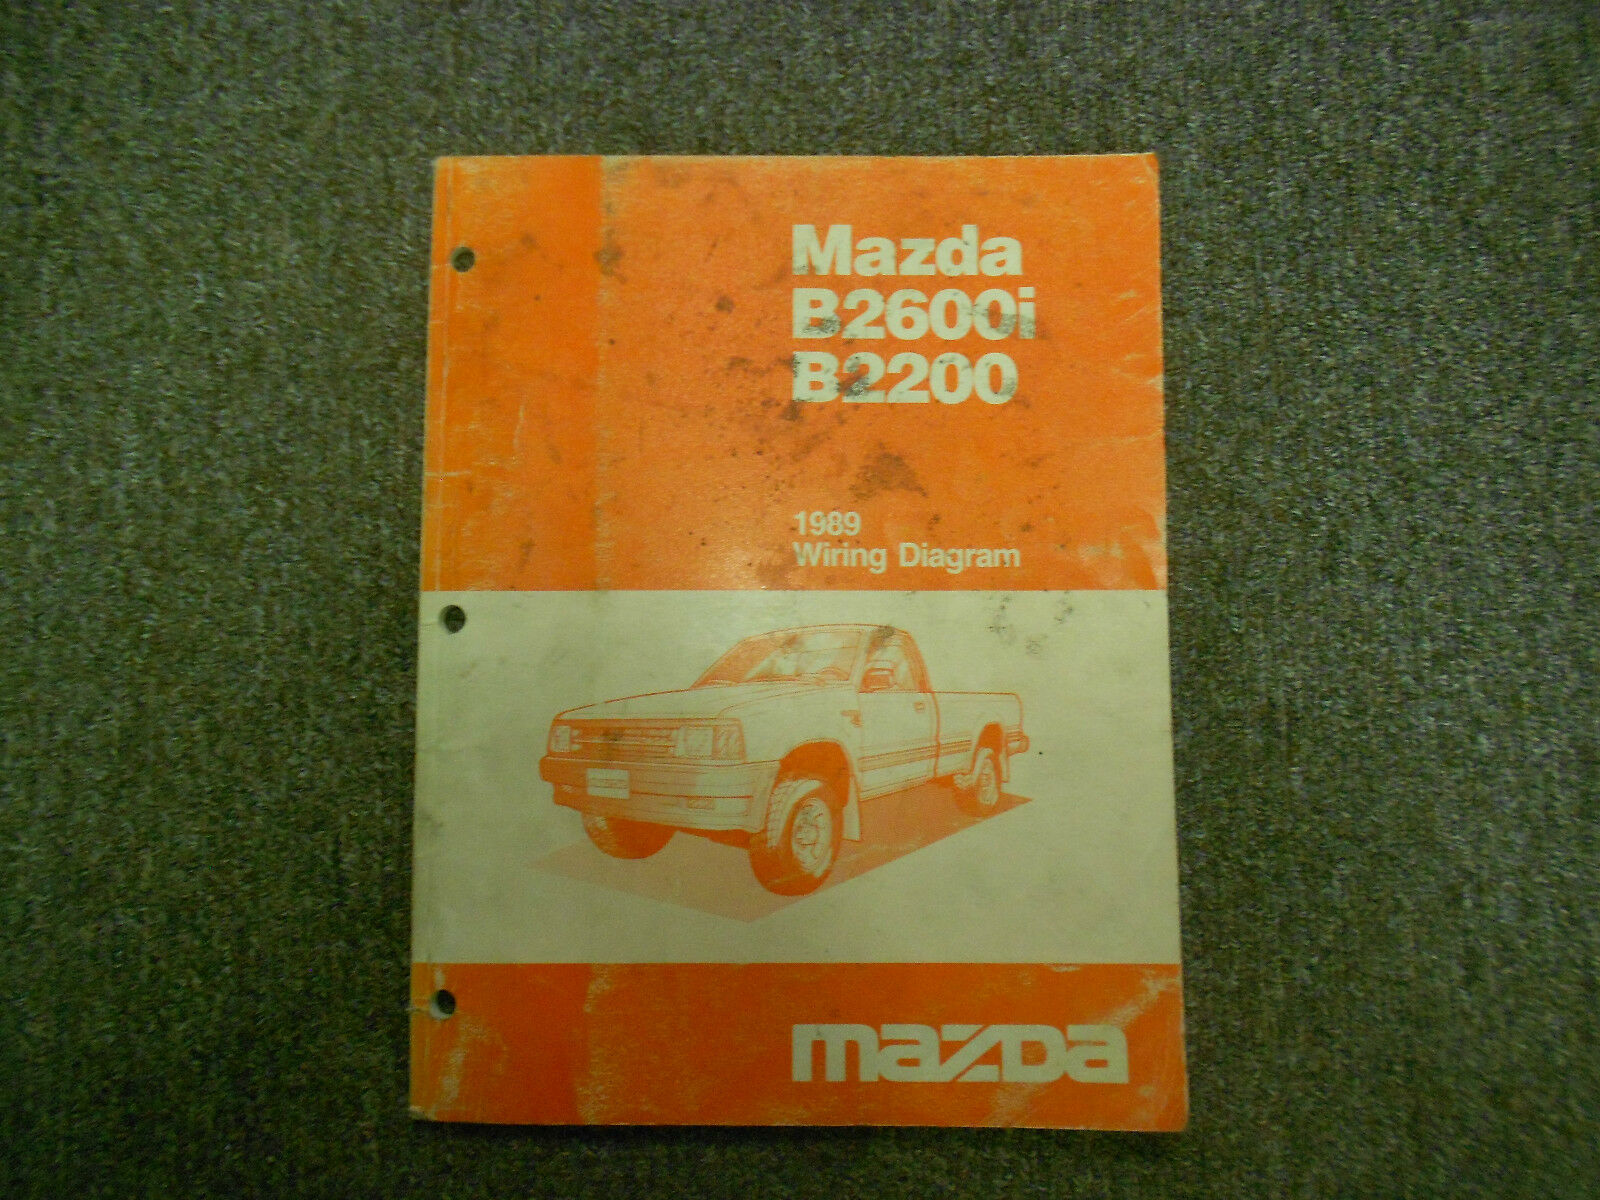 1989 Mazda B2600i B2200 Wiring Diagram Service Shop Manual Oem Book 89 Suzuki Sidekick 1 Of 1only Available